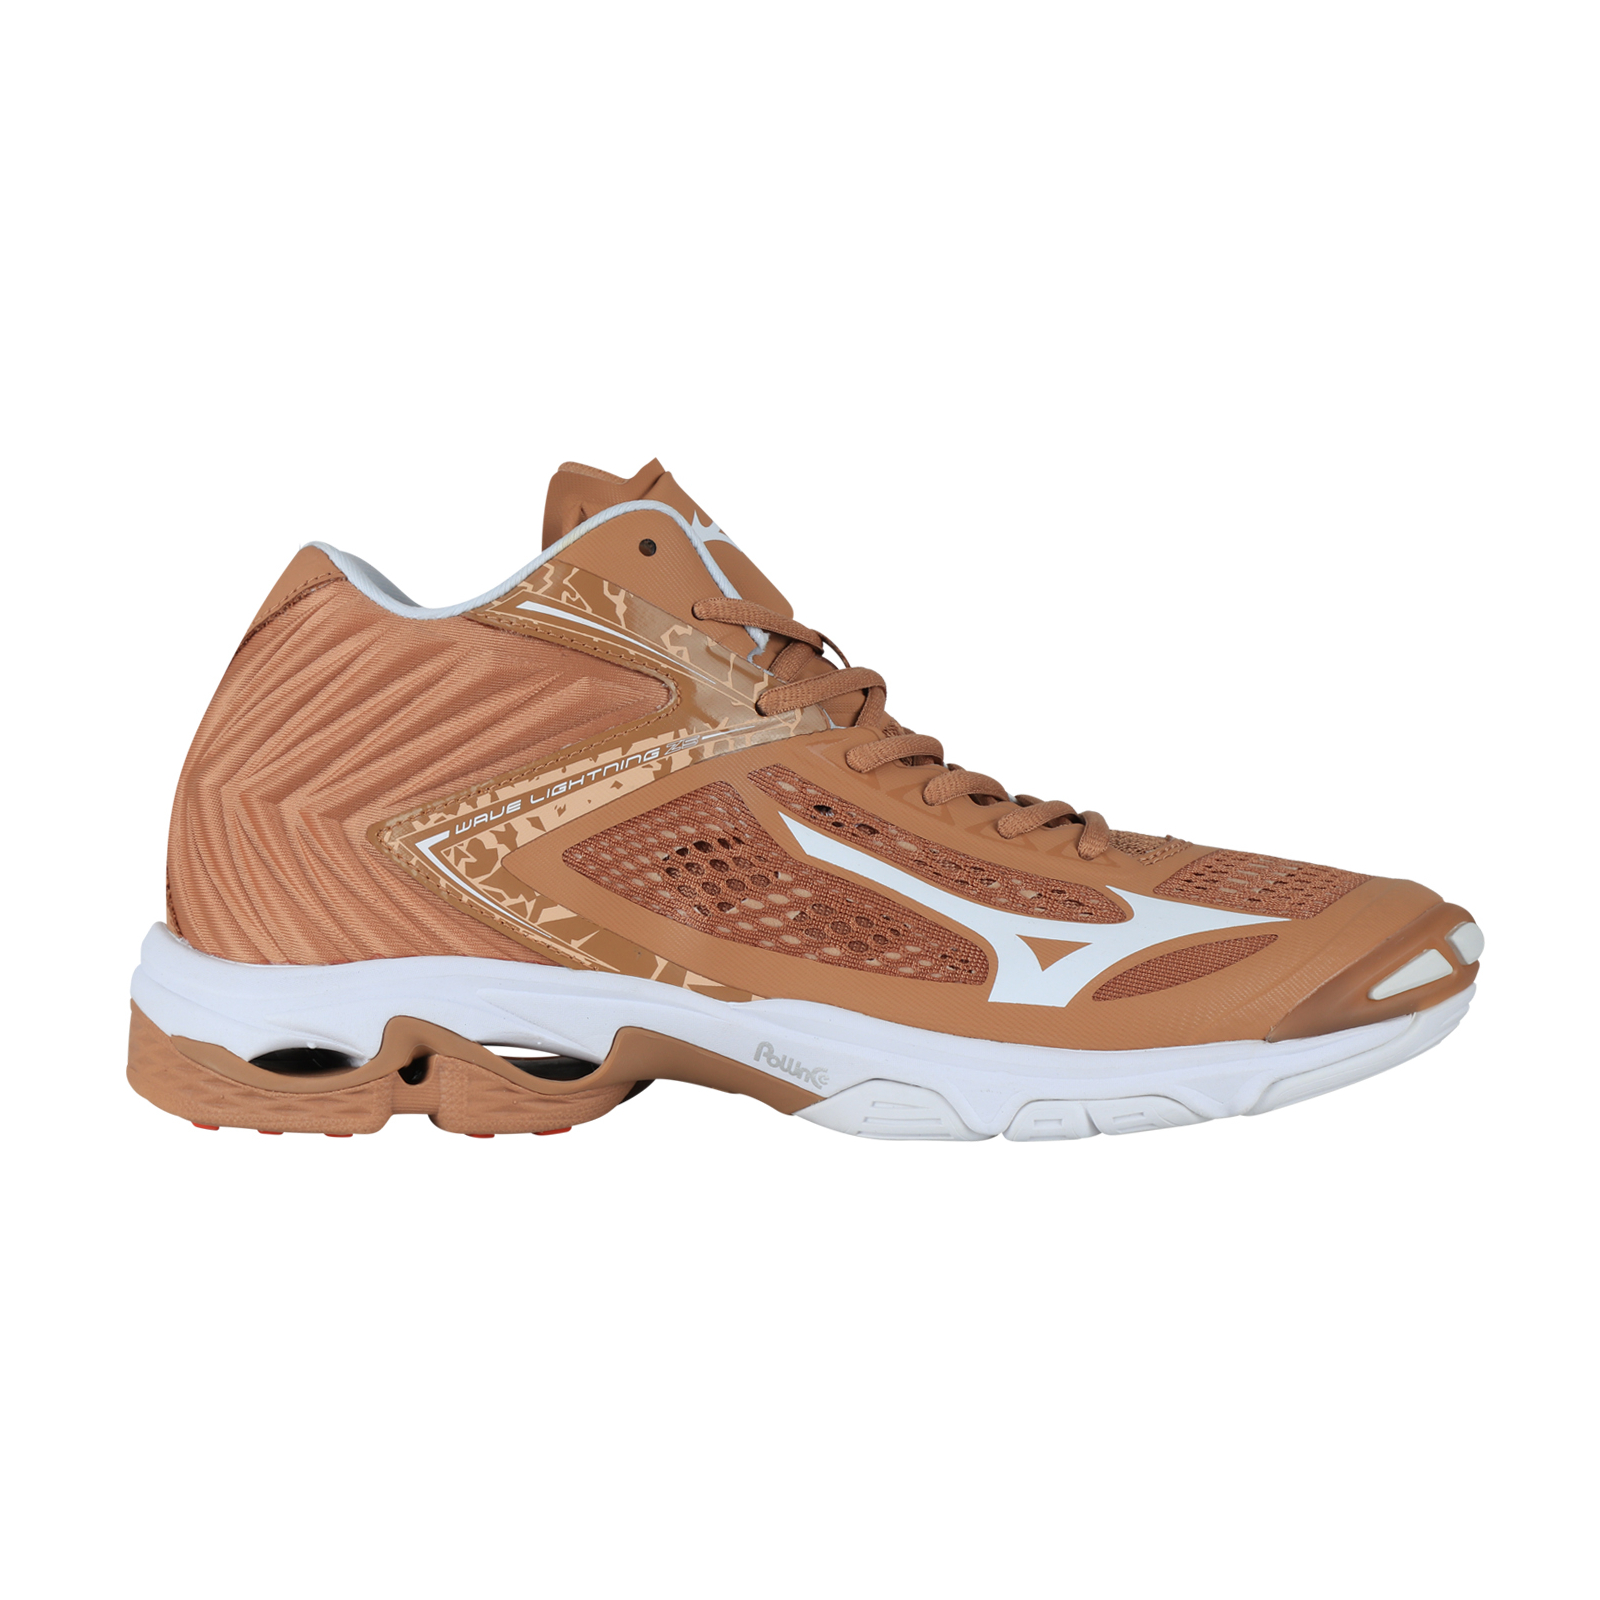 WAVE LIGHTNING Z5 MID - INDIAN TAN/WHITE/SHEEPSKIN